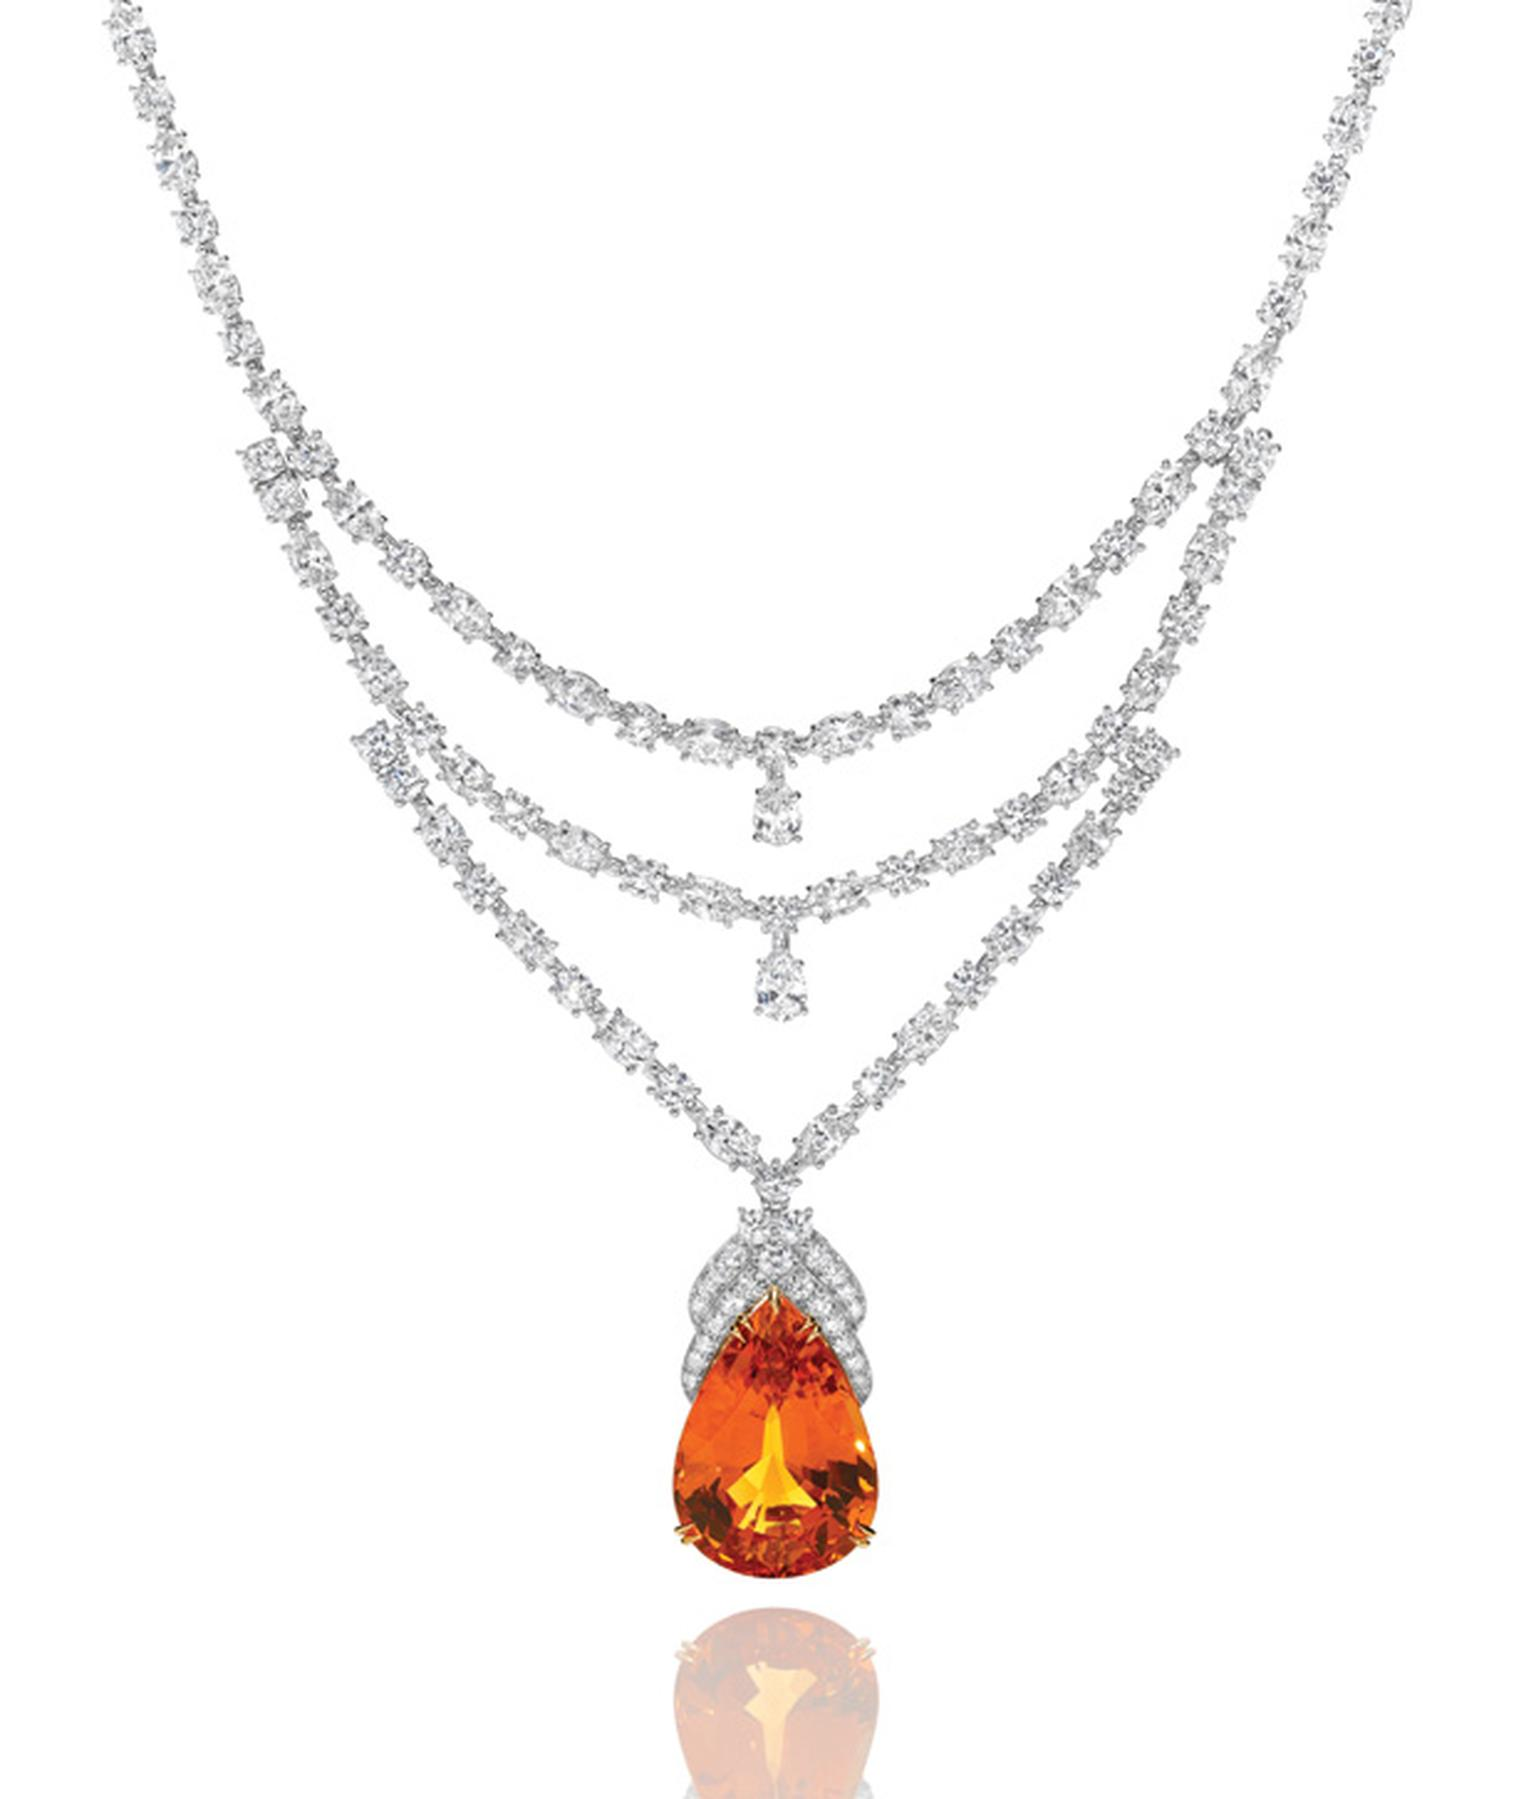 Harry Winston mandarin garnet and diamond necklace